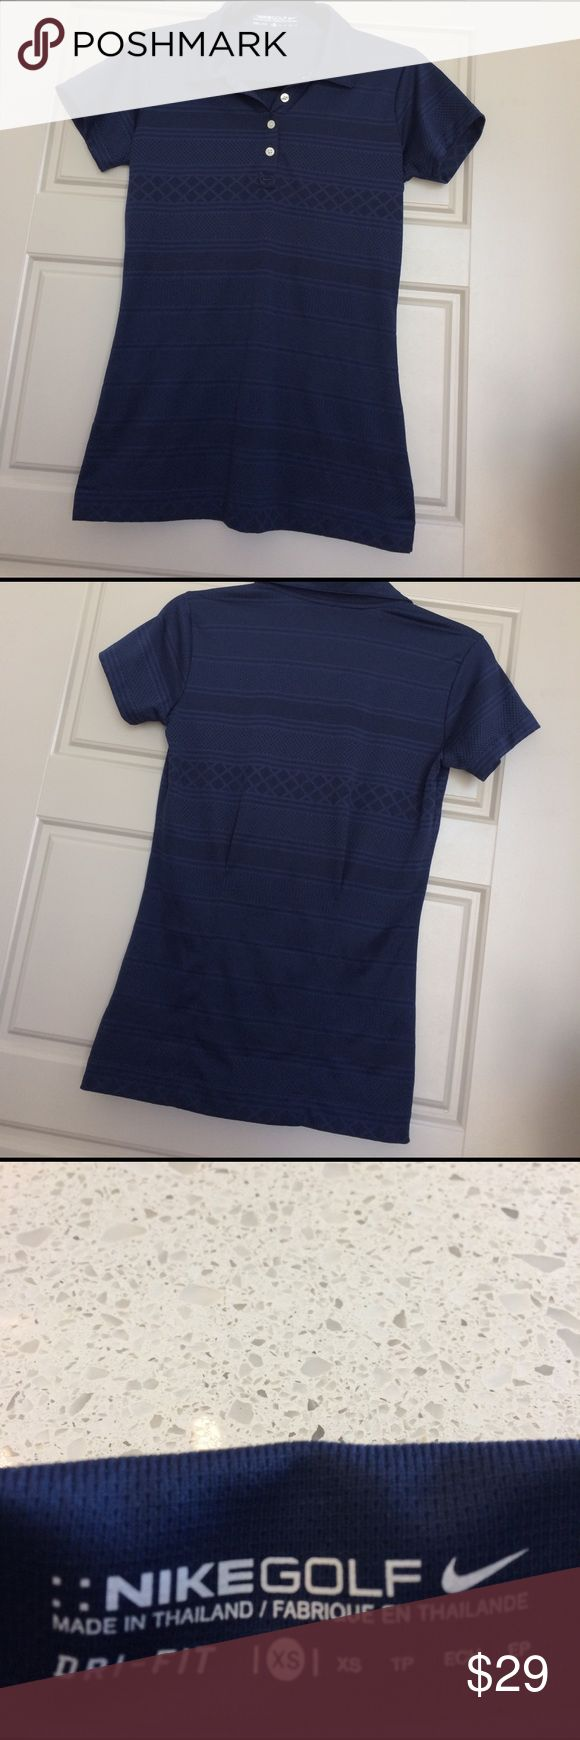 NIKE golf shirt XS Nike dri-fit Golf shirt size XS worn once -like new....gorgeous breathable material navy color women's gold shirt with pleates in the back to make it more form fitting Nike Tops